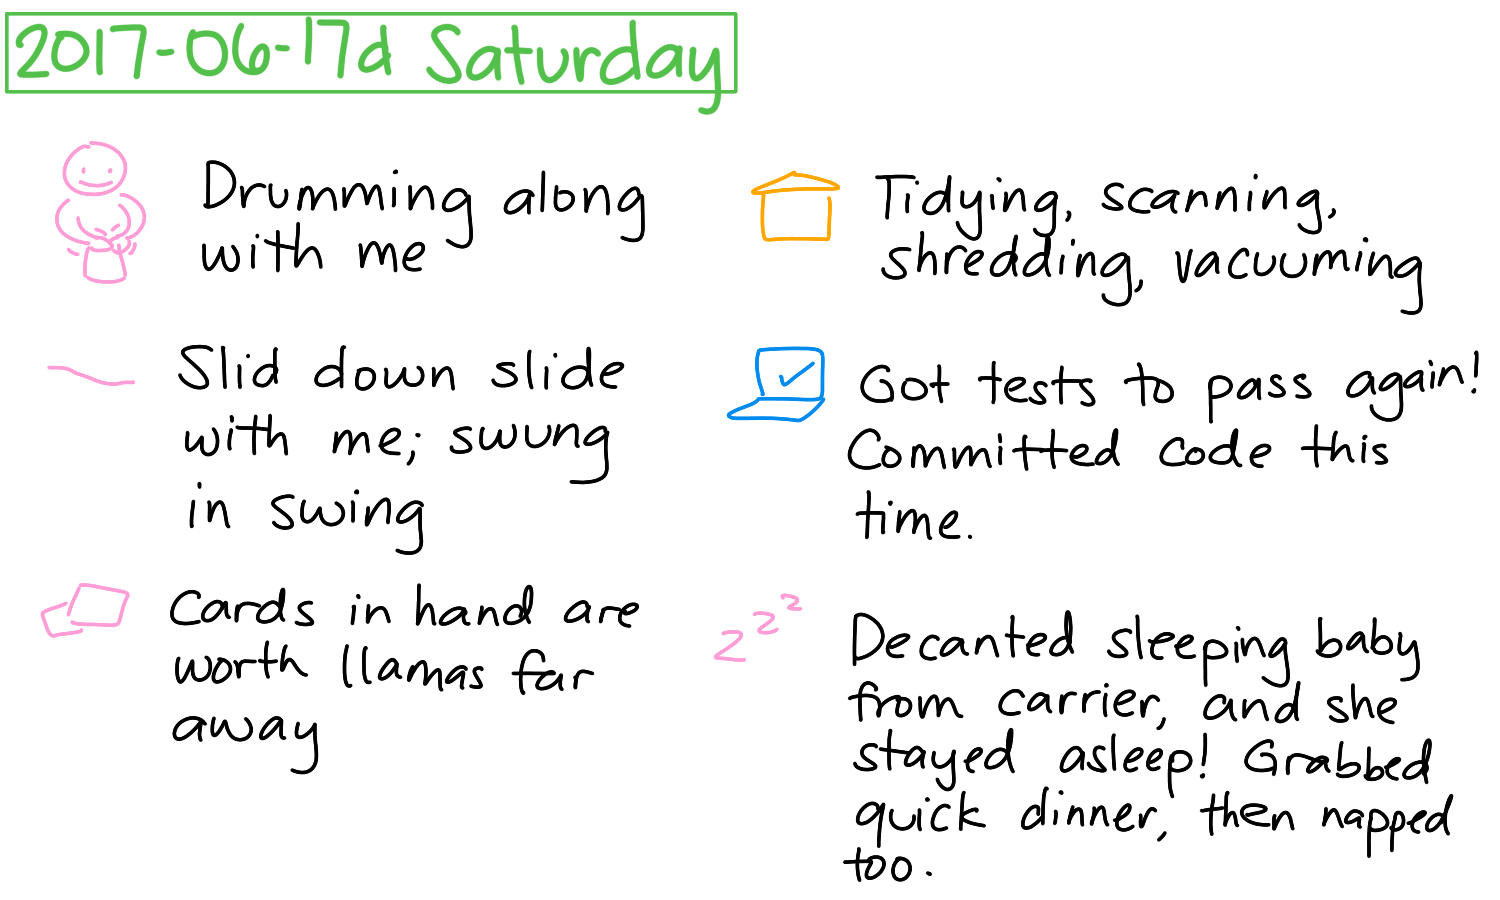 2017-06-17d Saturday #daily #journal.png